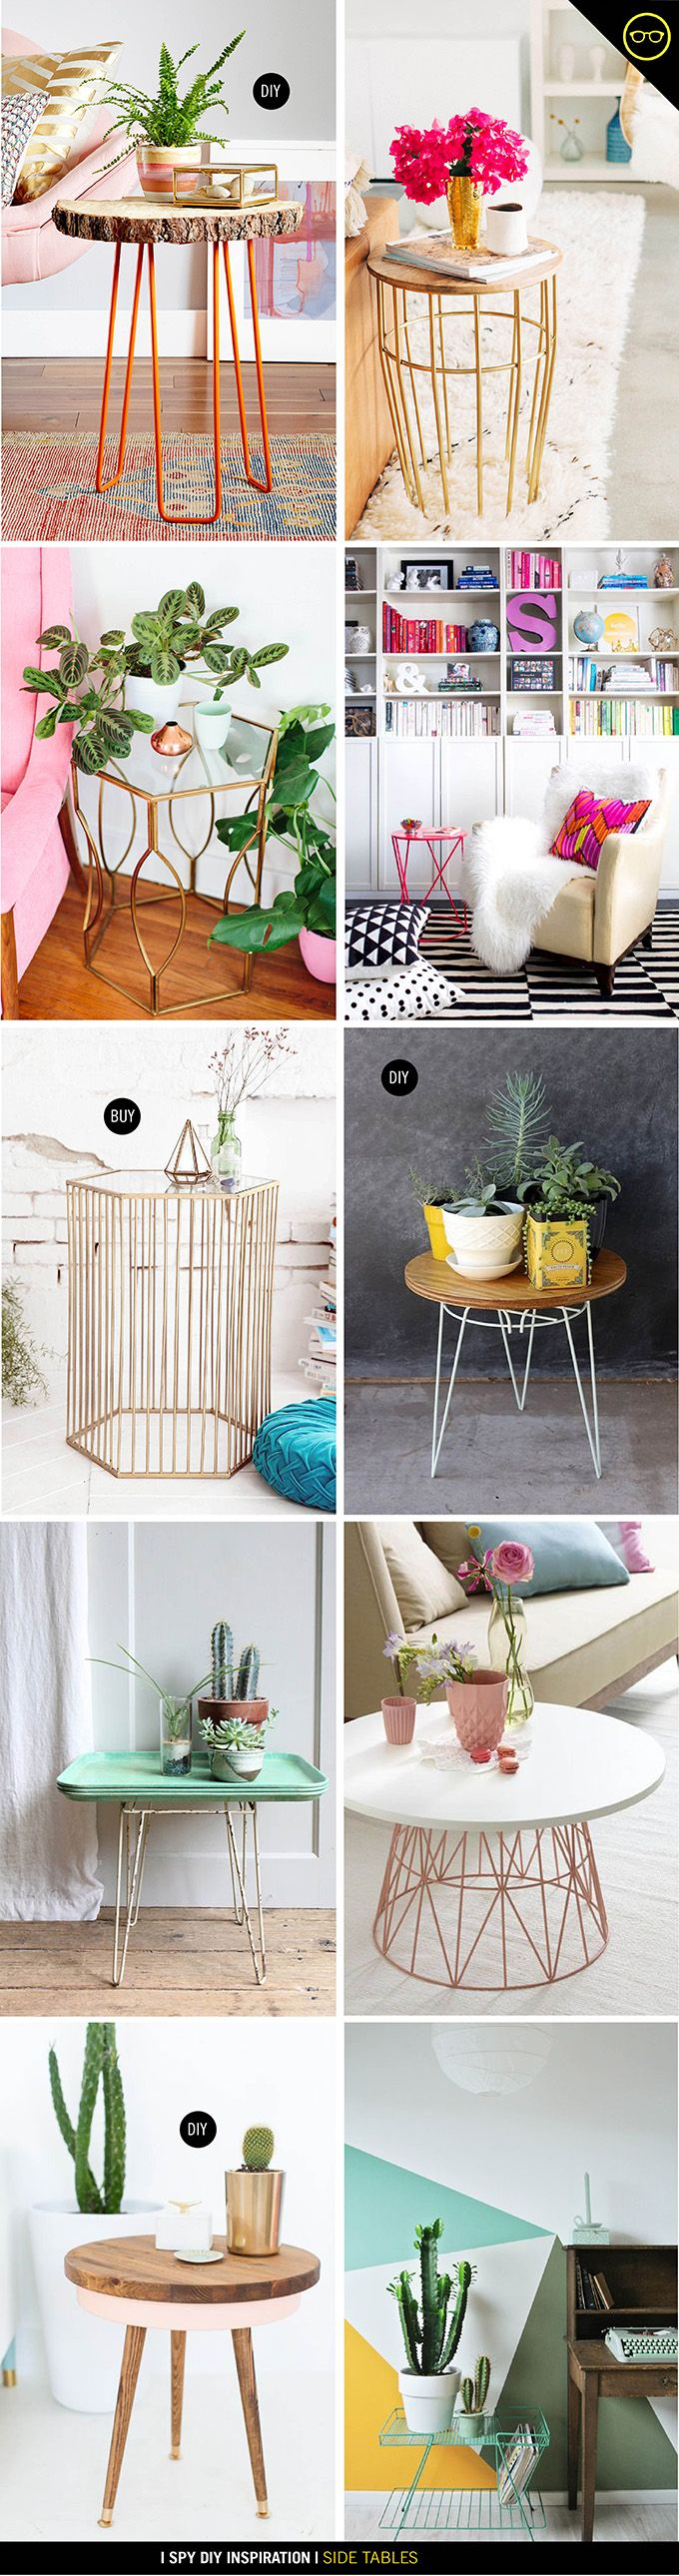 WeLoveHomeBlog.com - sometimes the simplest ideas are the best INSPIRATION | Side Table